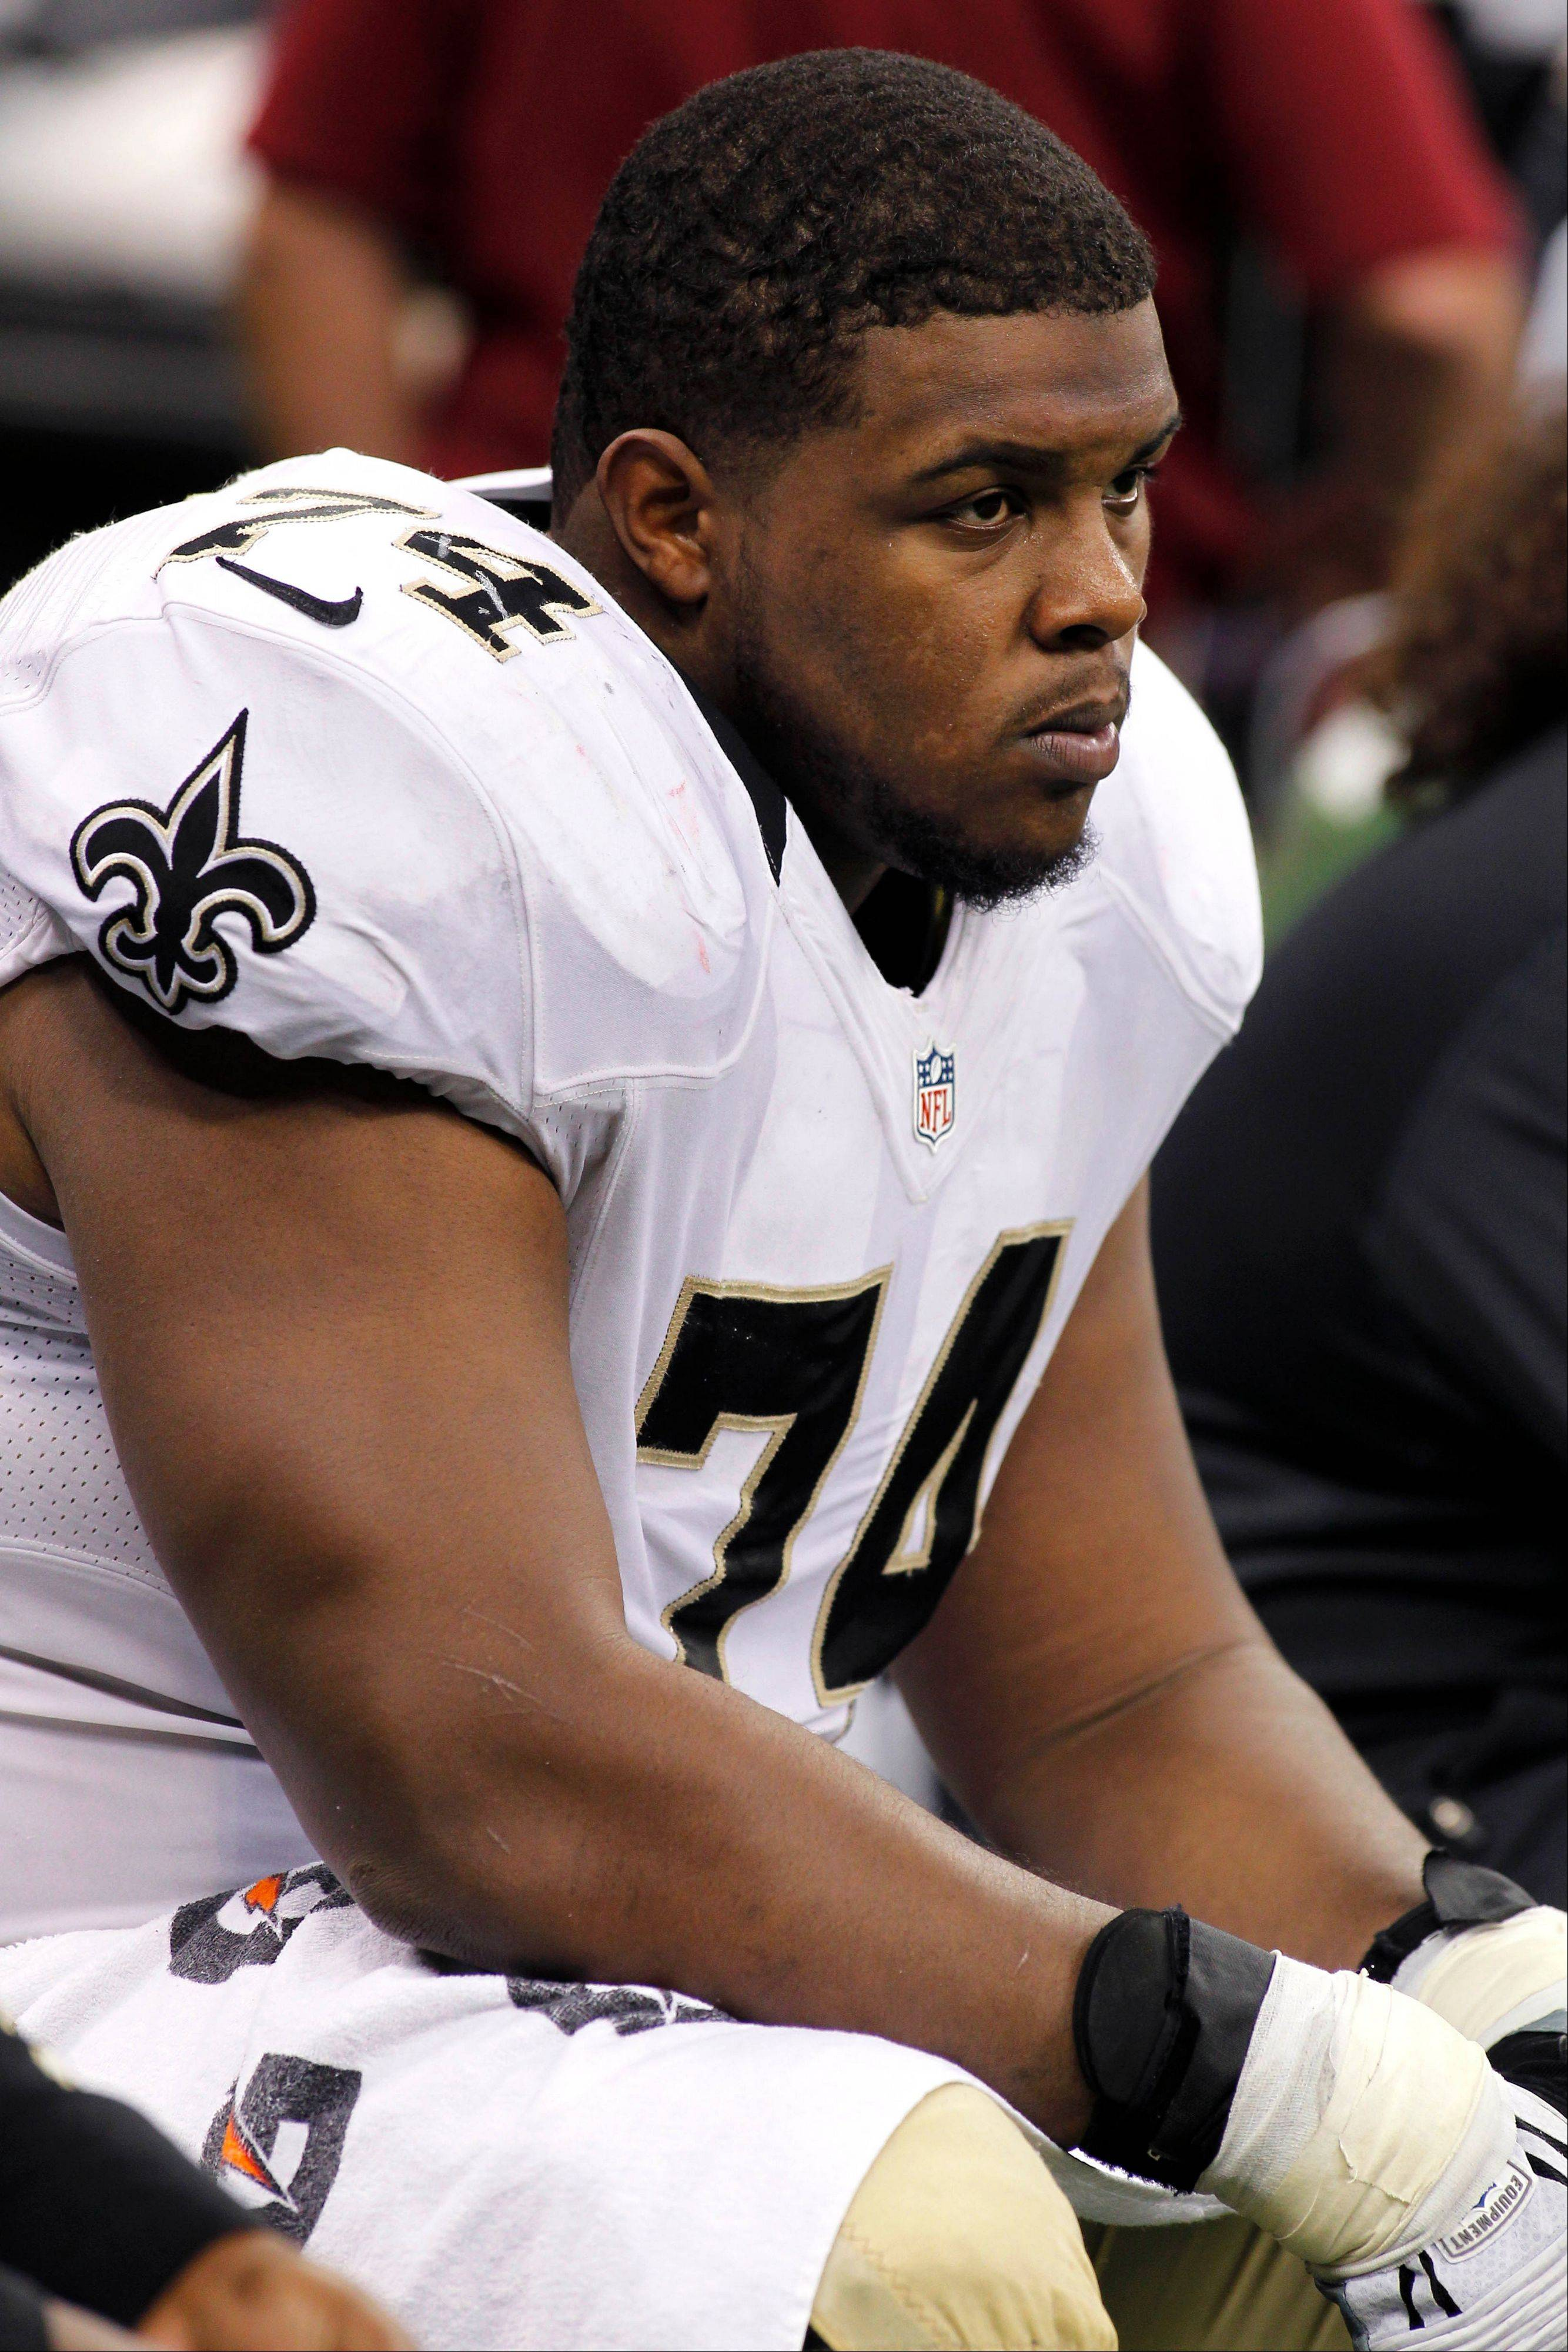 Bears sign left tackle Bushrod